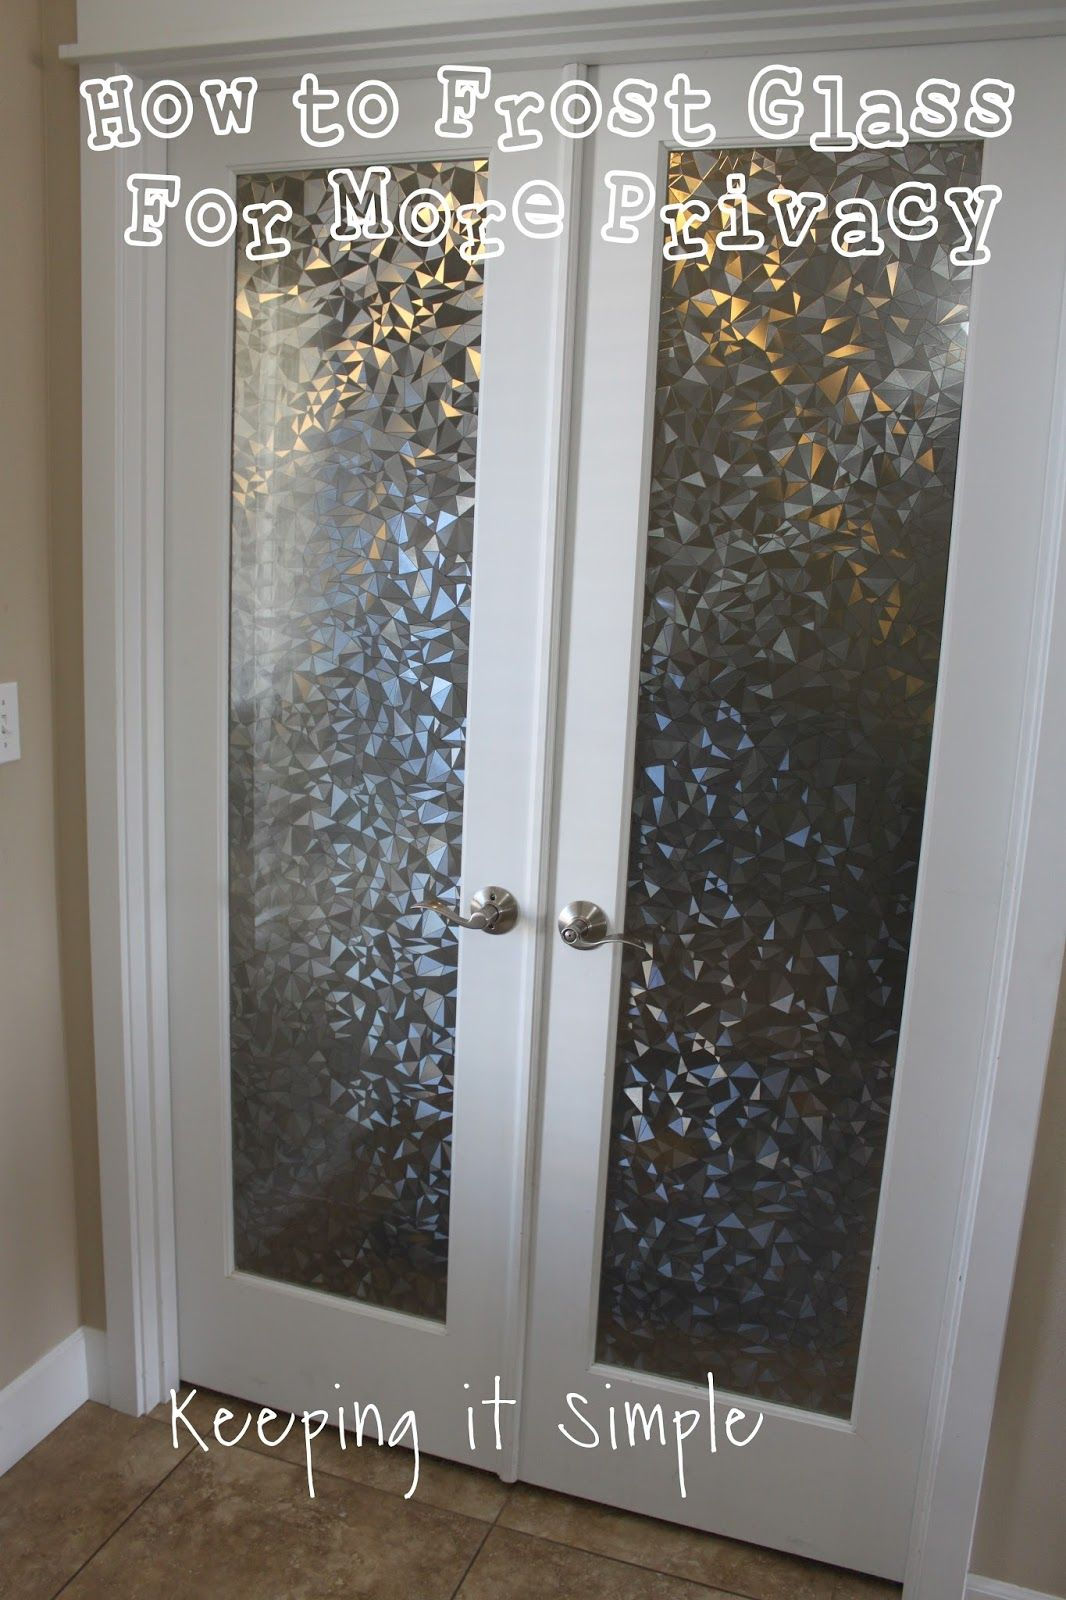 How To Frost Glass With Vinyl For More Privacy